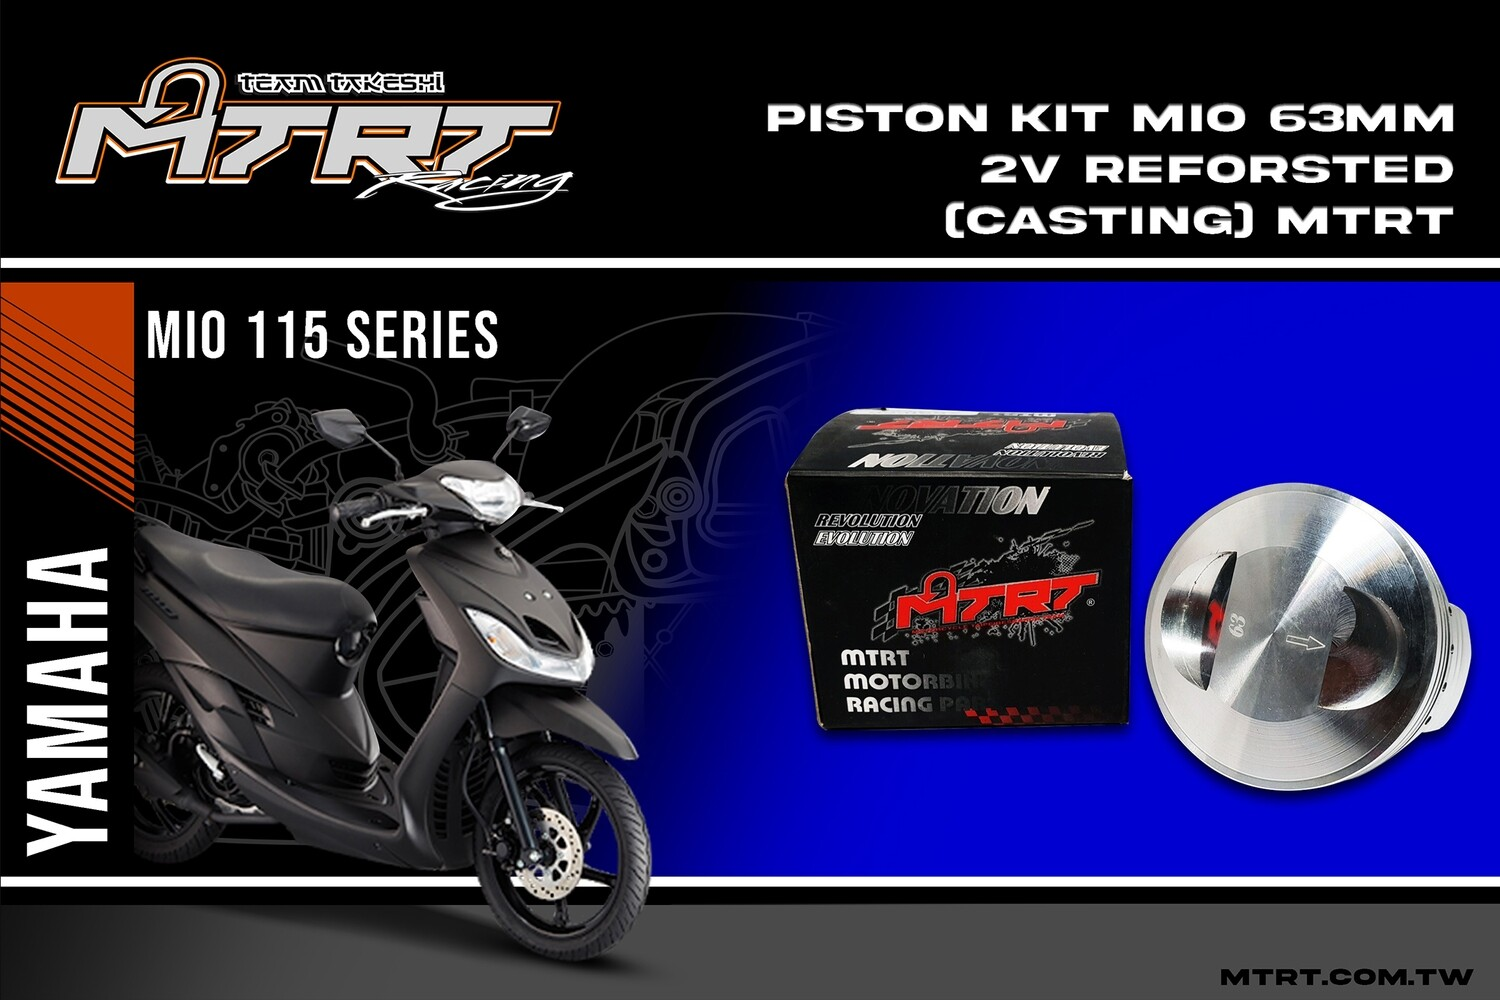 PISTON  KIT  MIO 63MM 2V Reforsted (Casting)  MTRT